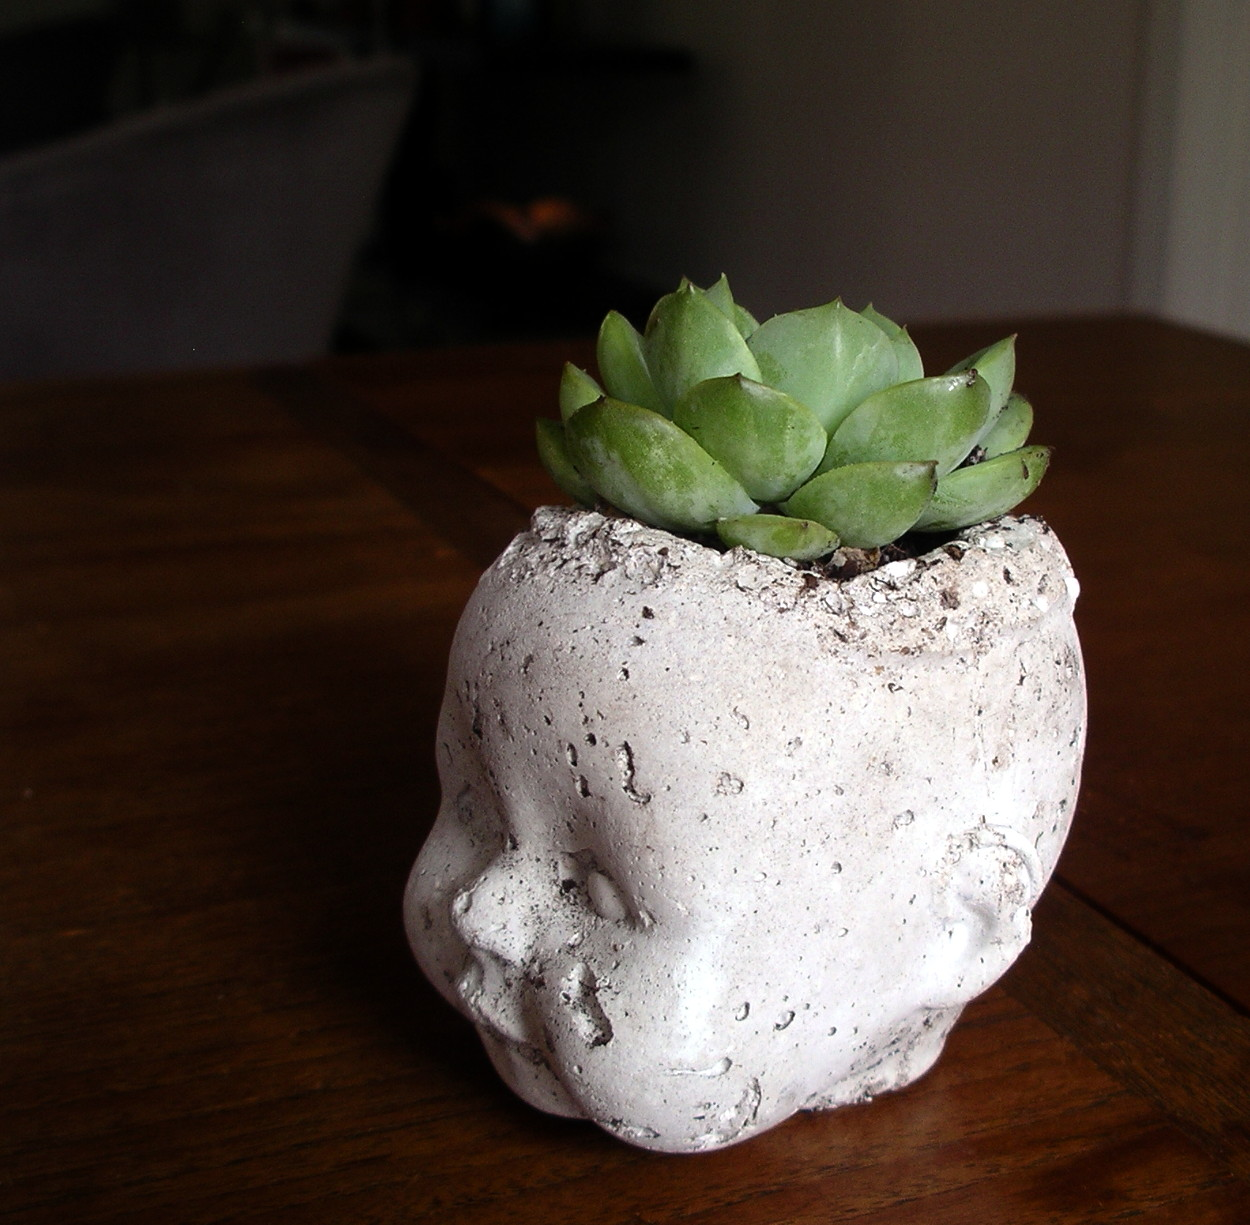 Pudge Baby Succulent 3.4 View